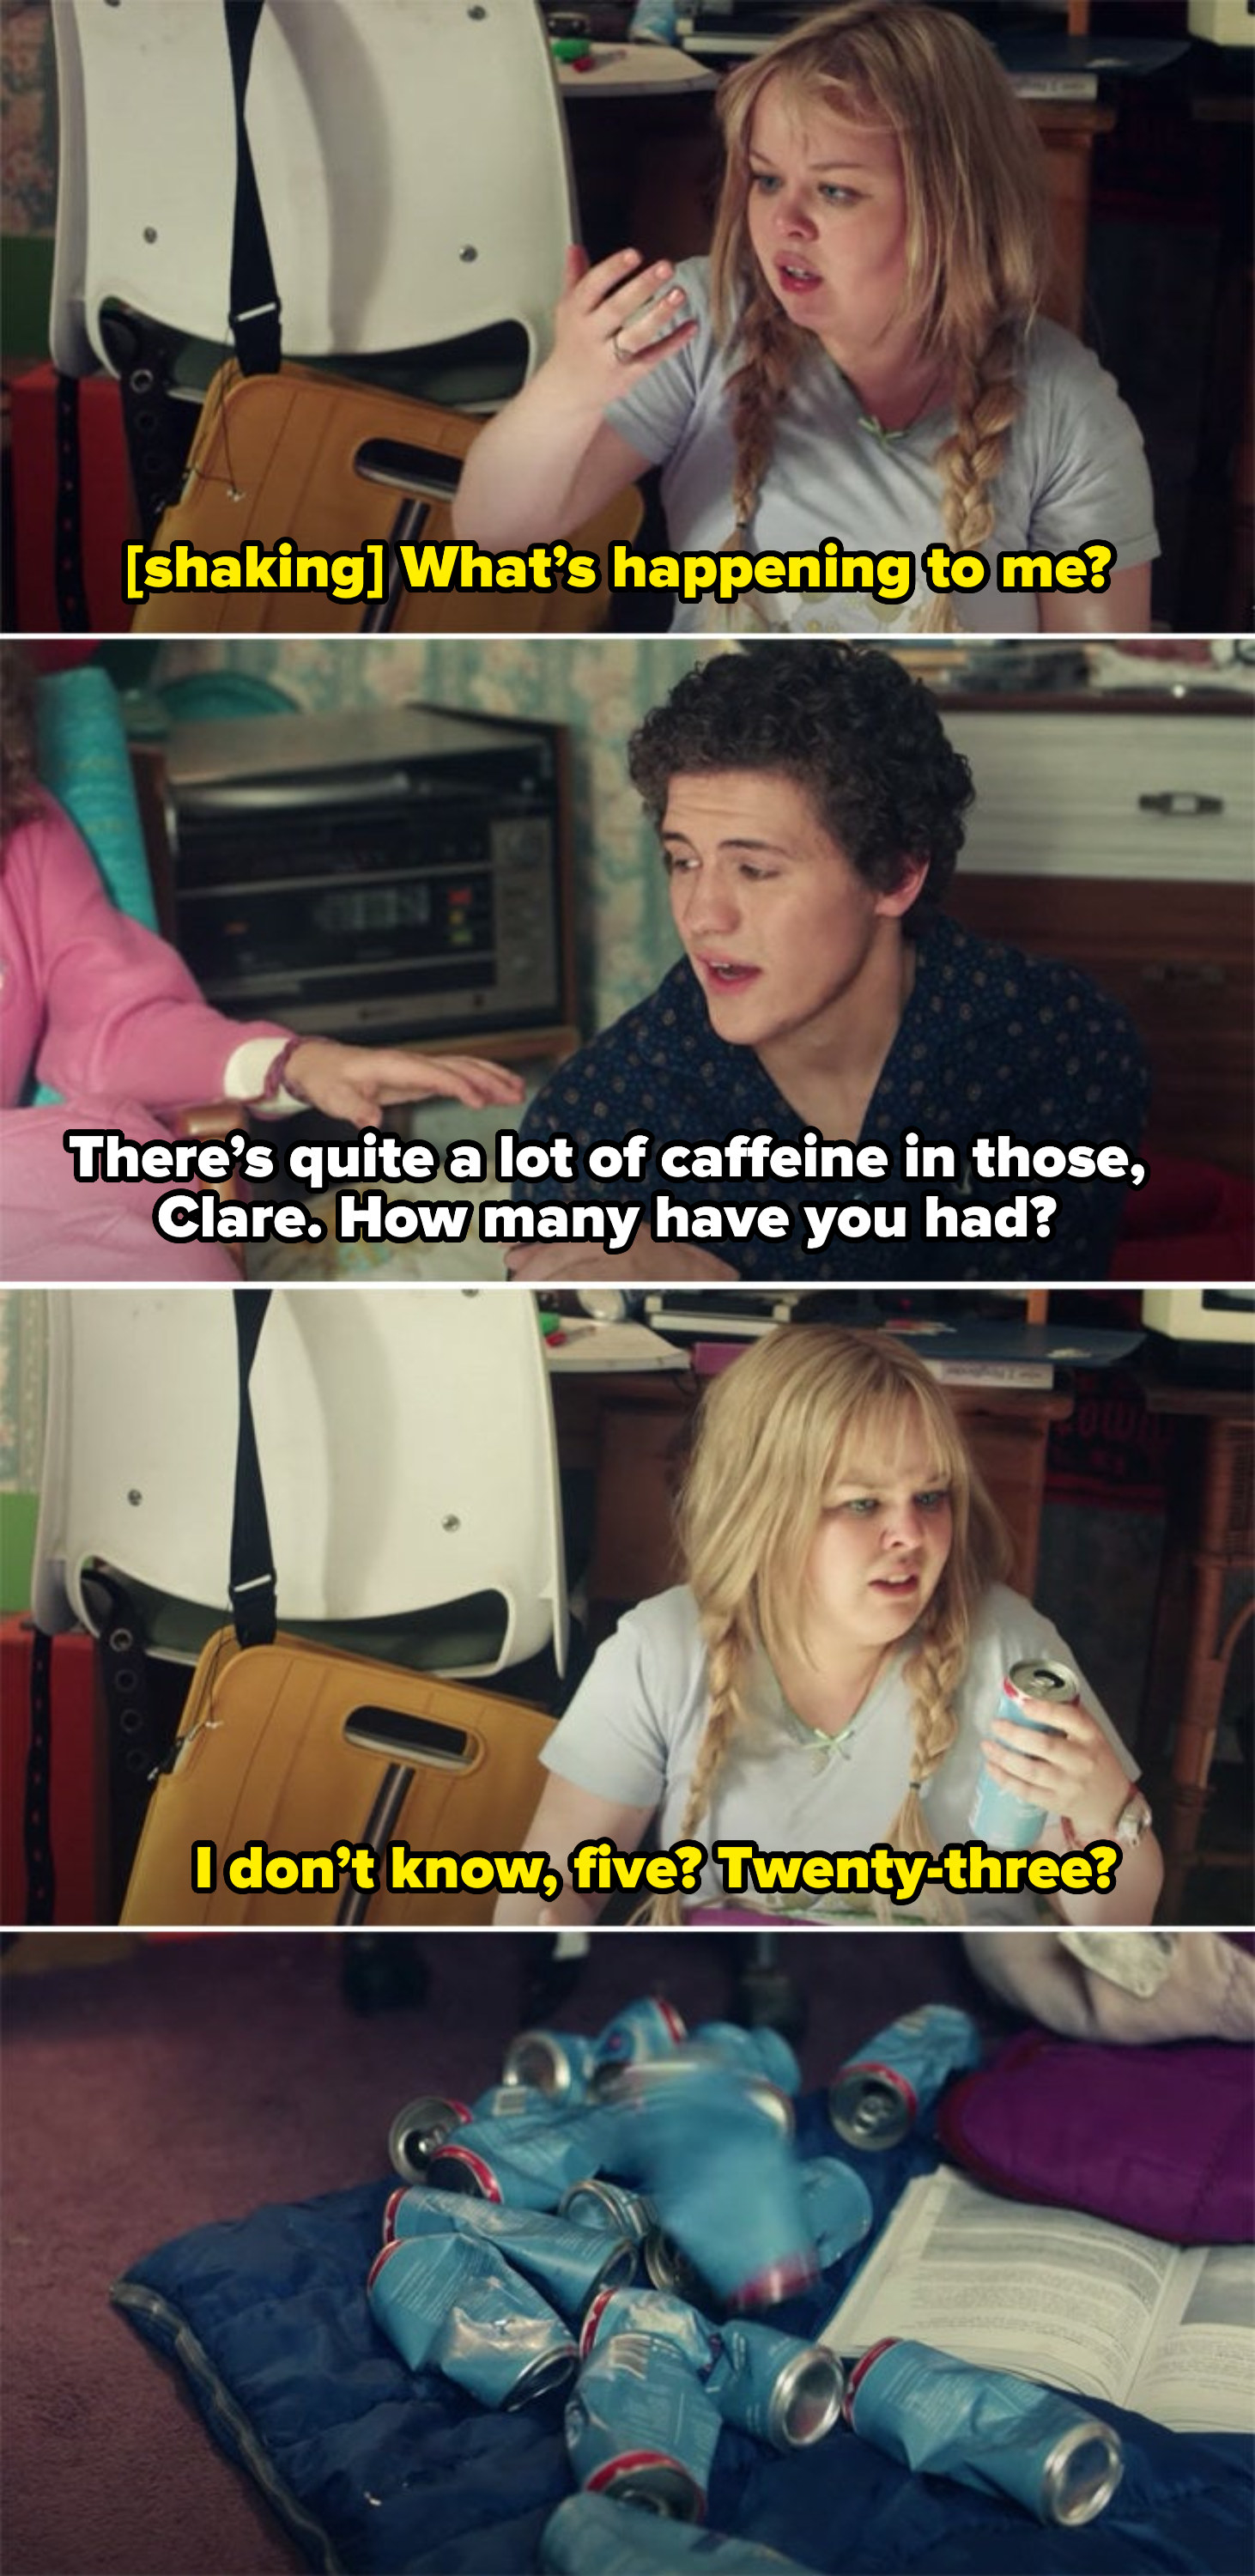 Clare shaking, James asking how many energy drinks she's had, and Clare saving five or twenty three while sitting next to a pile of empty cans